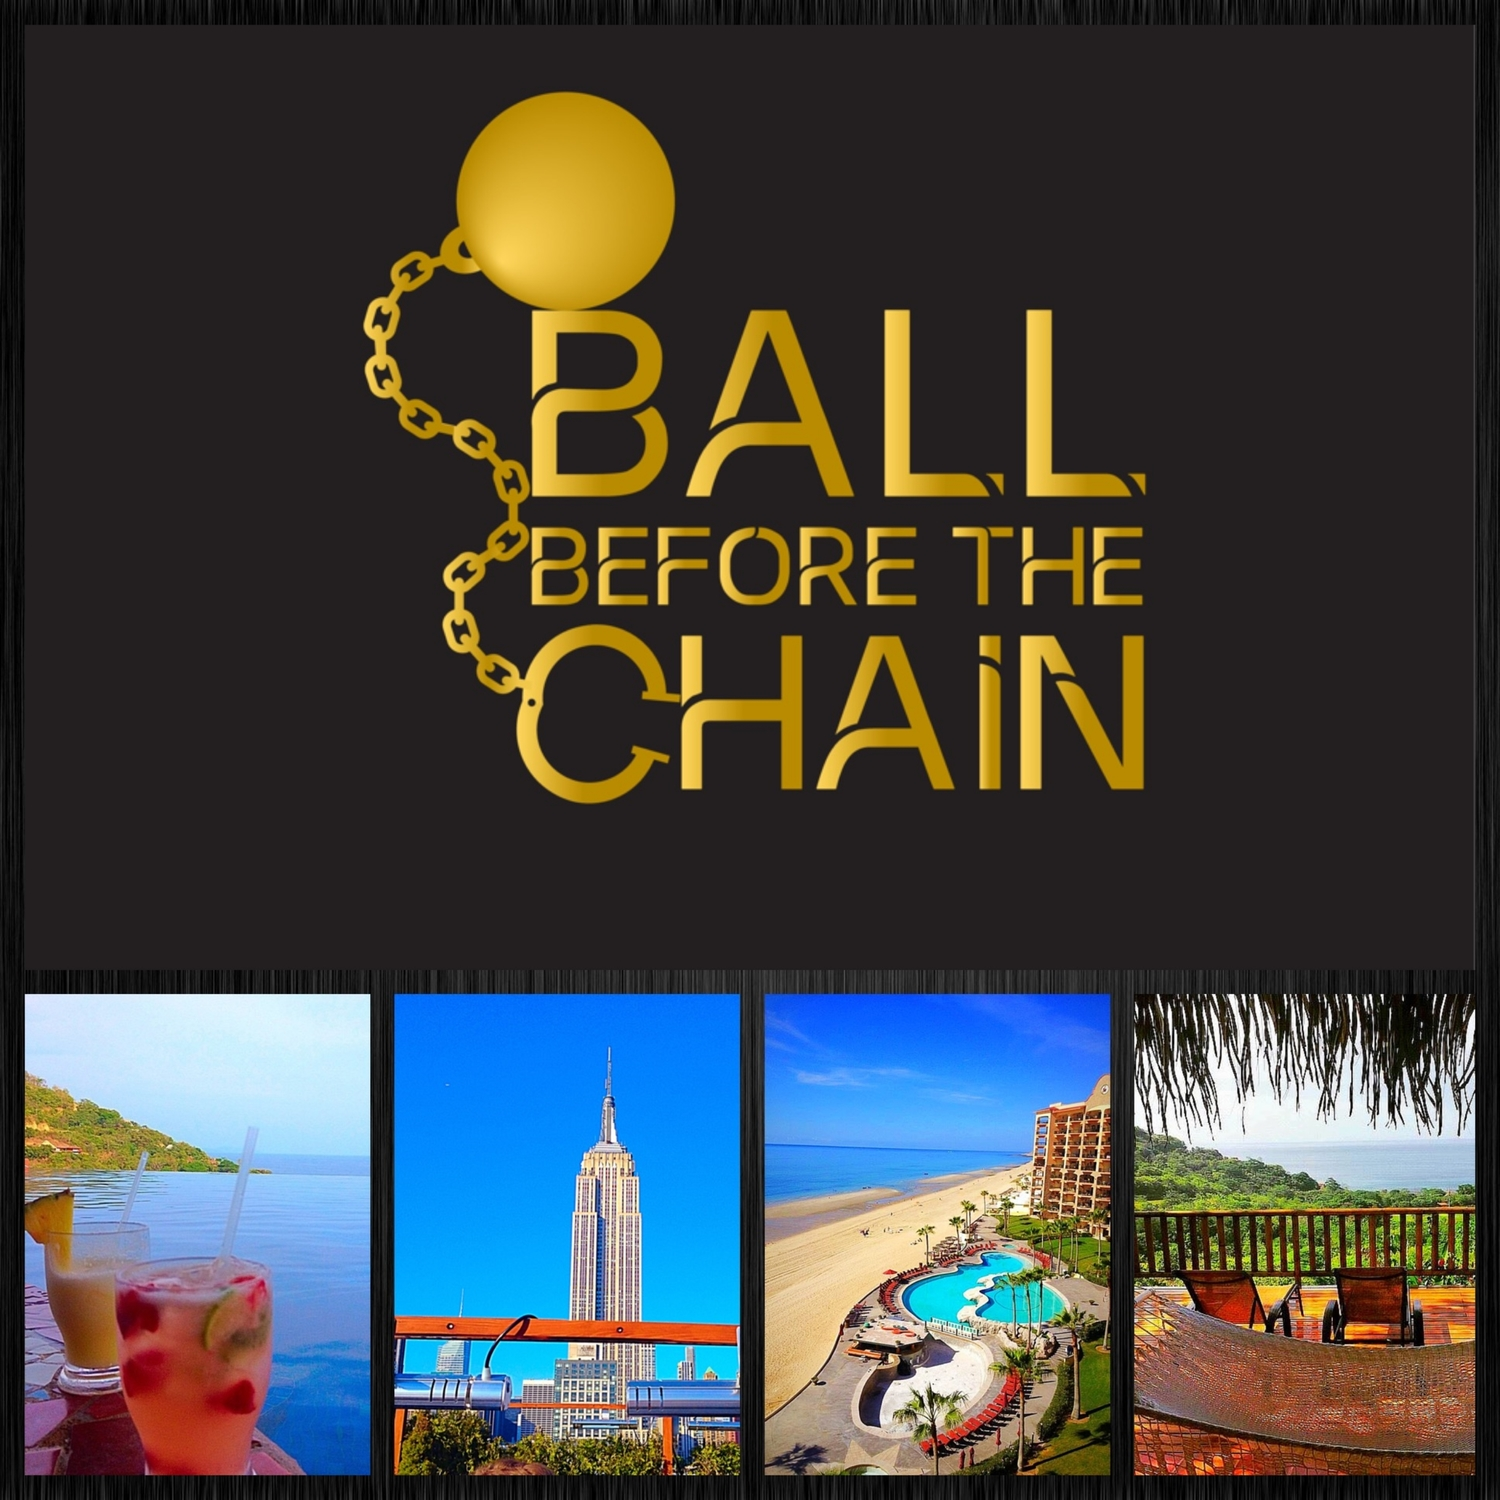 Ball Before the Chain